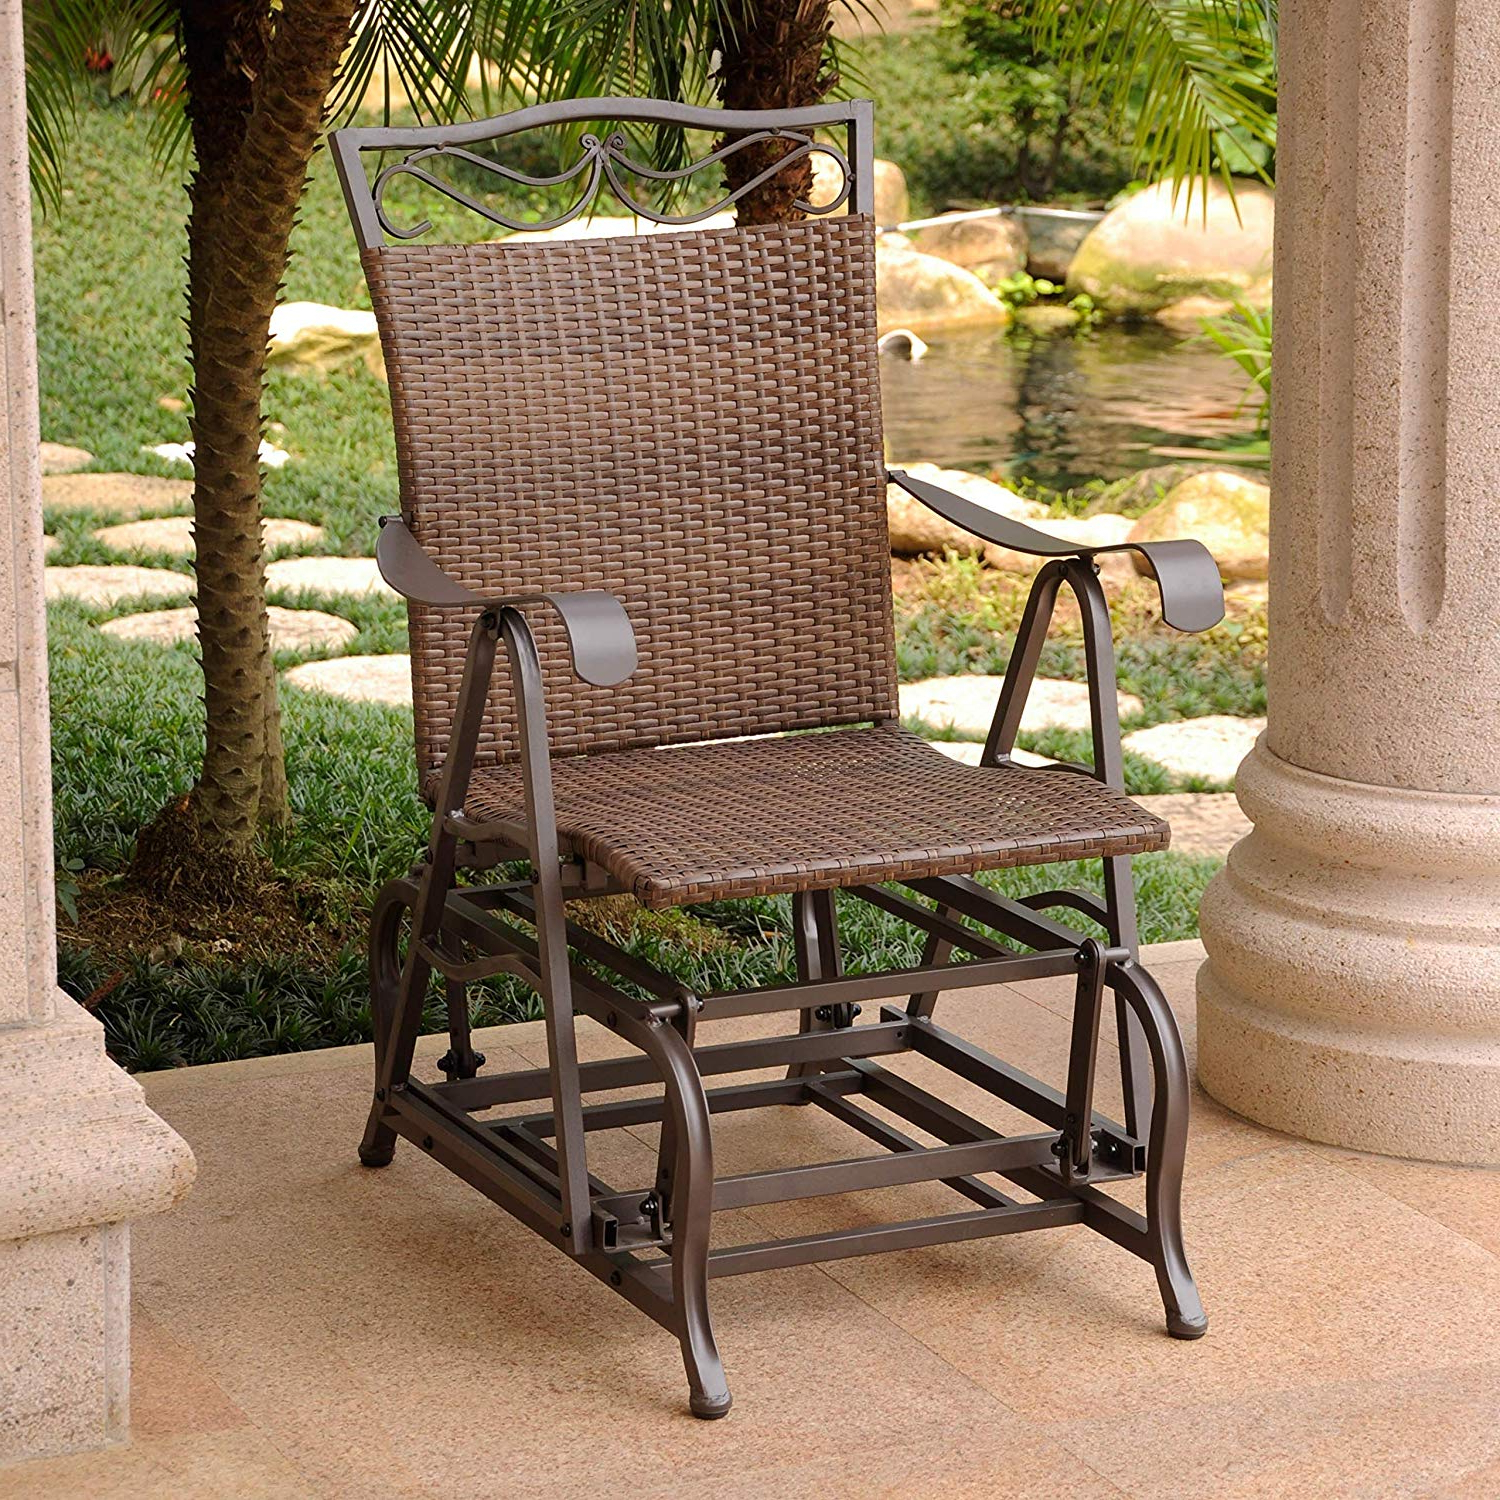 Most Current International Caravan Patio Glider Chair In Antique Brown Finish Inside 1 Person Antique Black Steel Outdoor Gliders (Gallery 27 of 30)